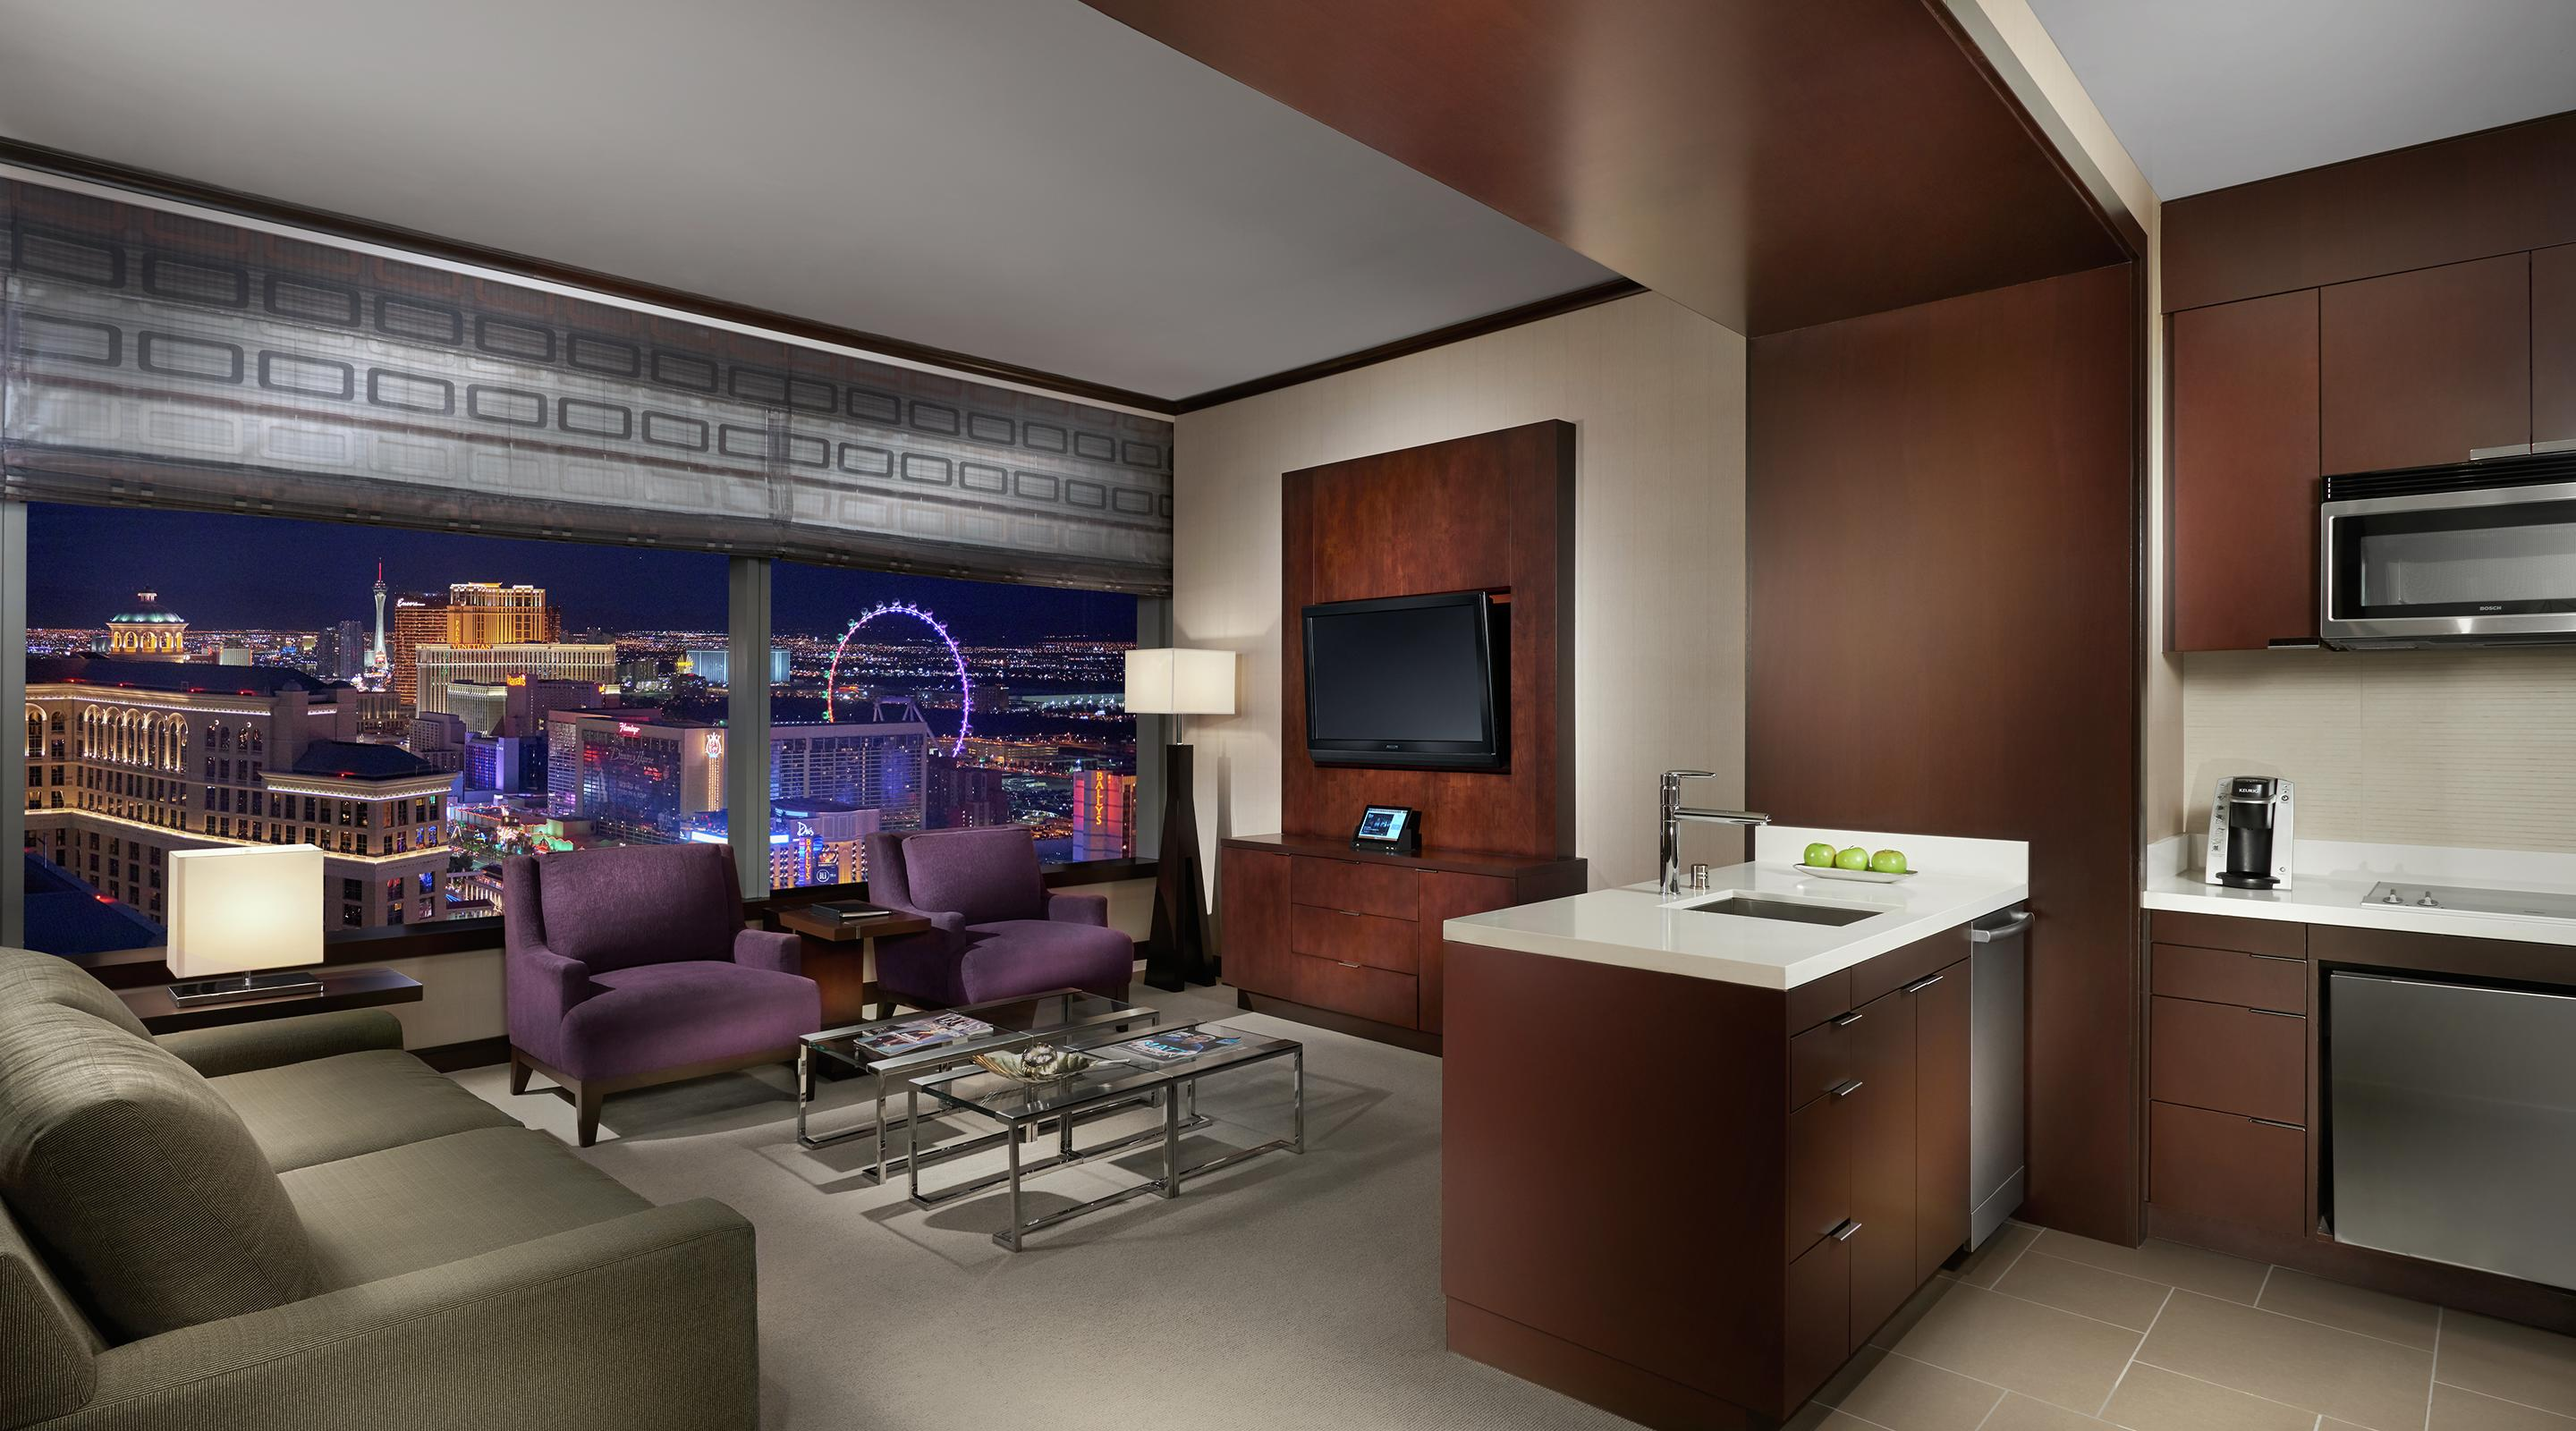 Experience one of Vdara's rooms with a view.